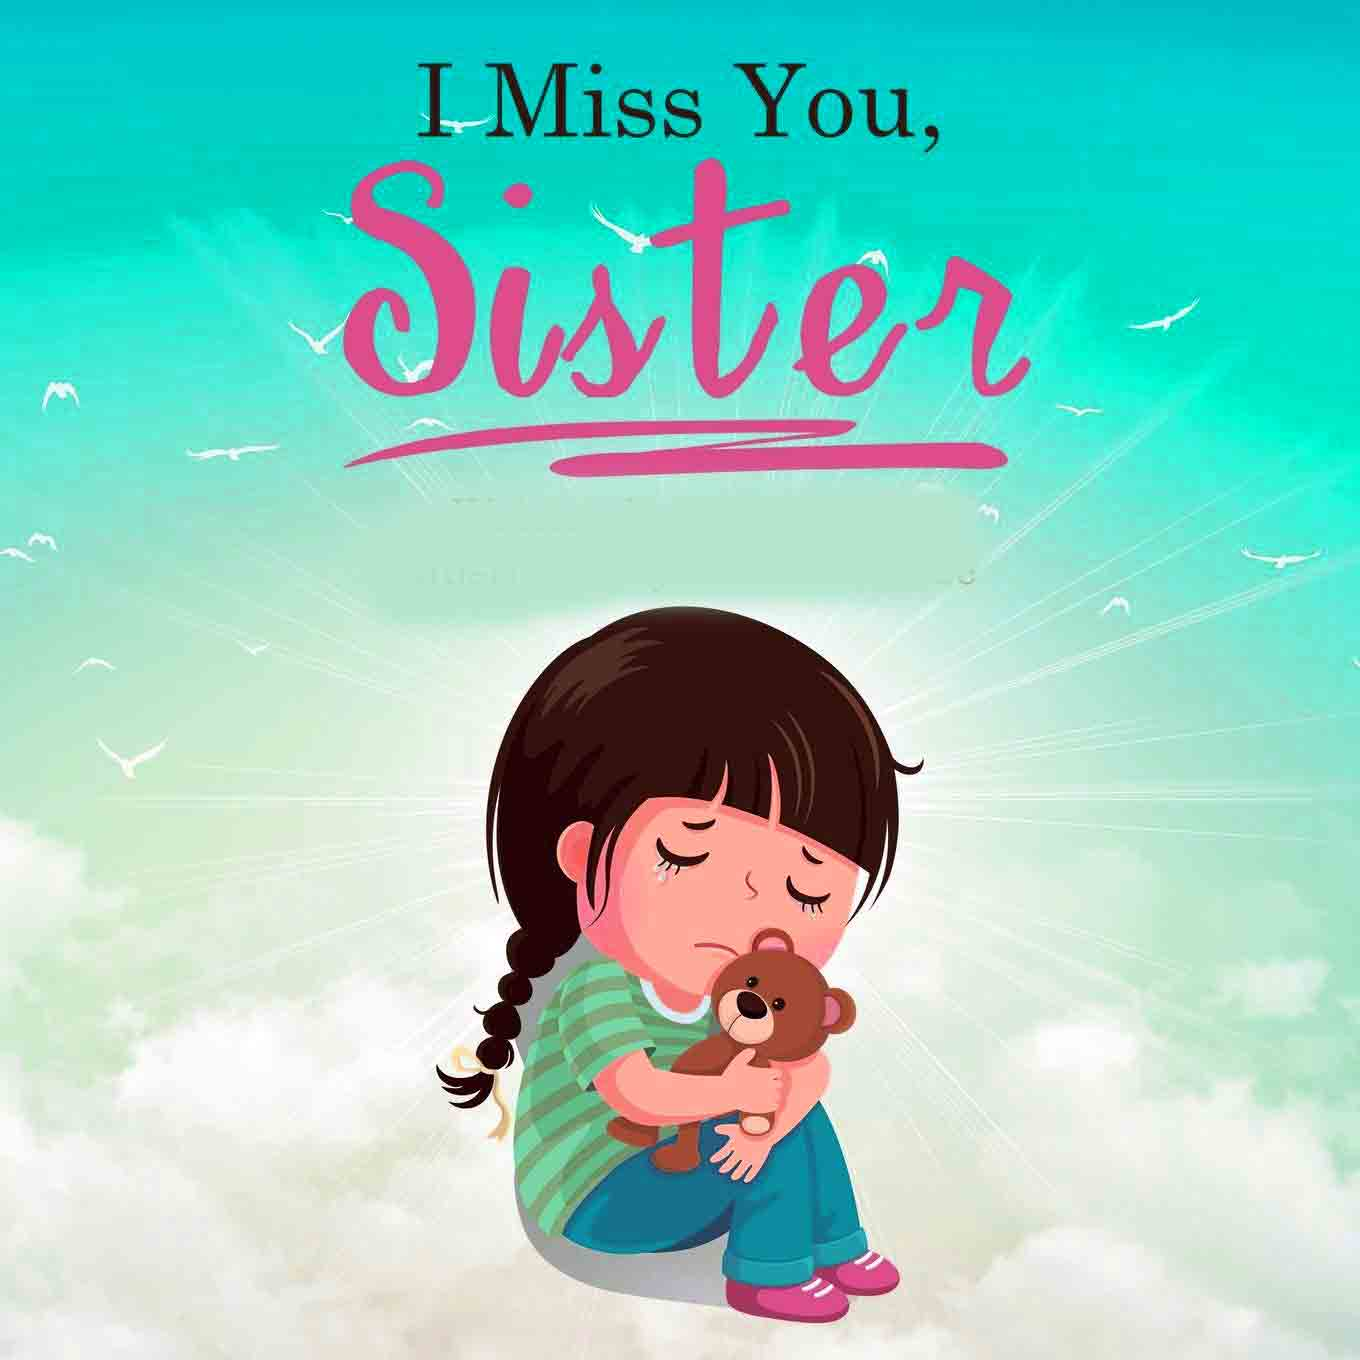 I Miss You Images for sister